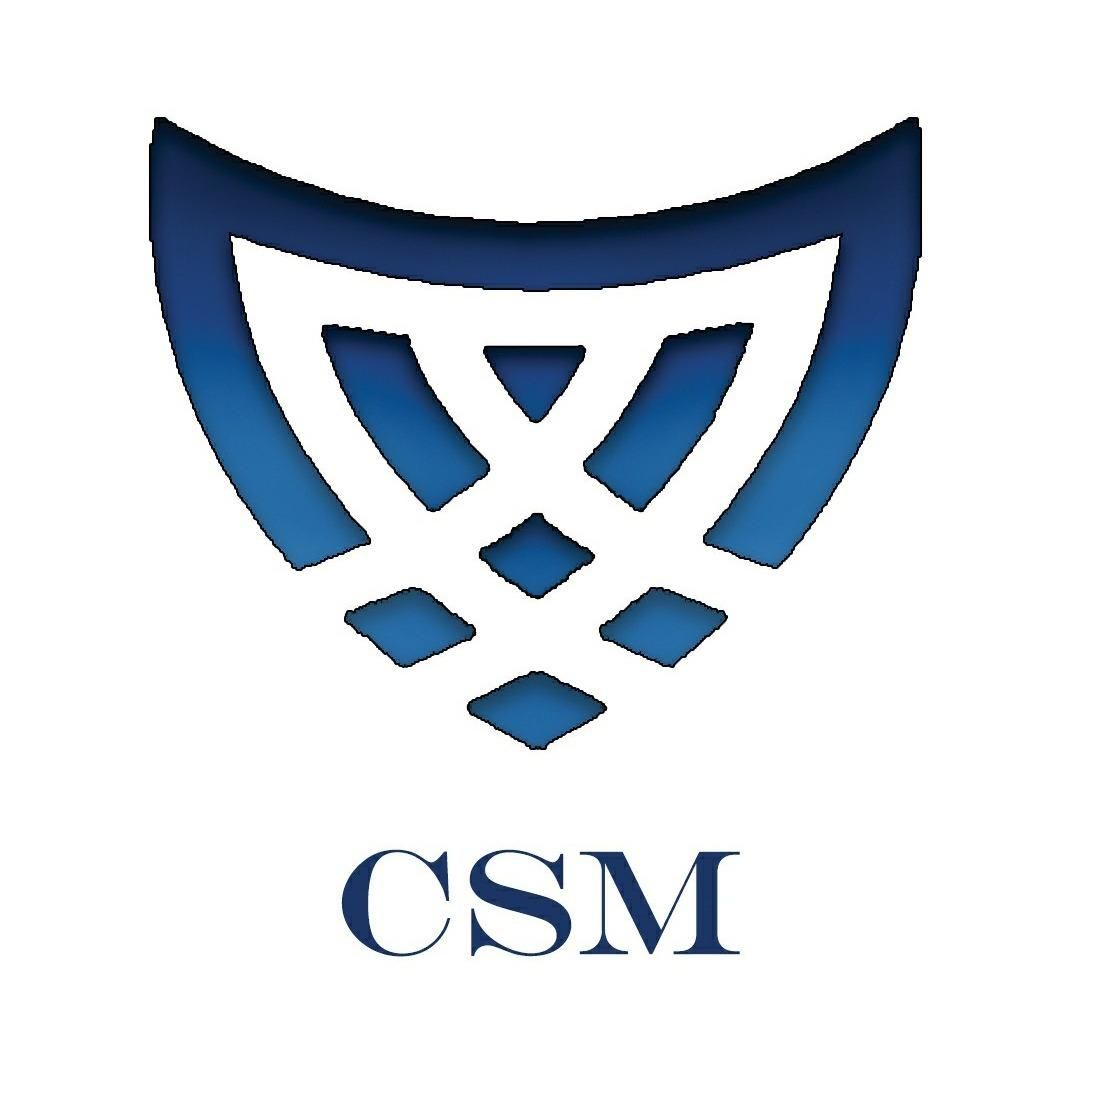 Cargo Solutions Management/CSM Leasing